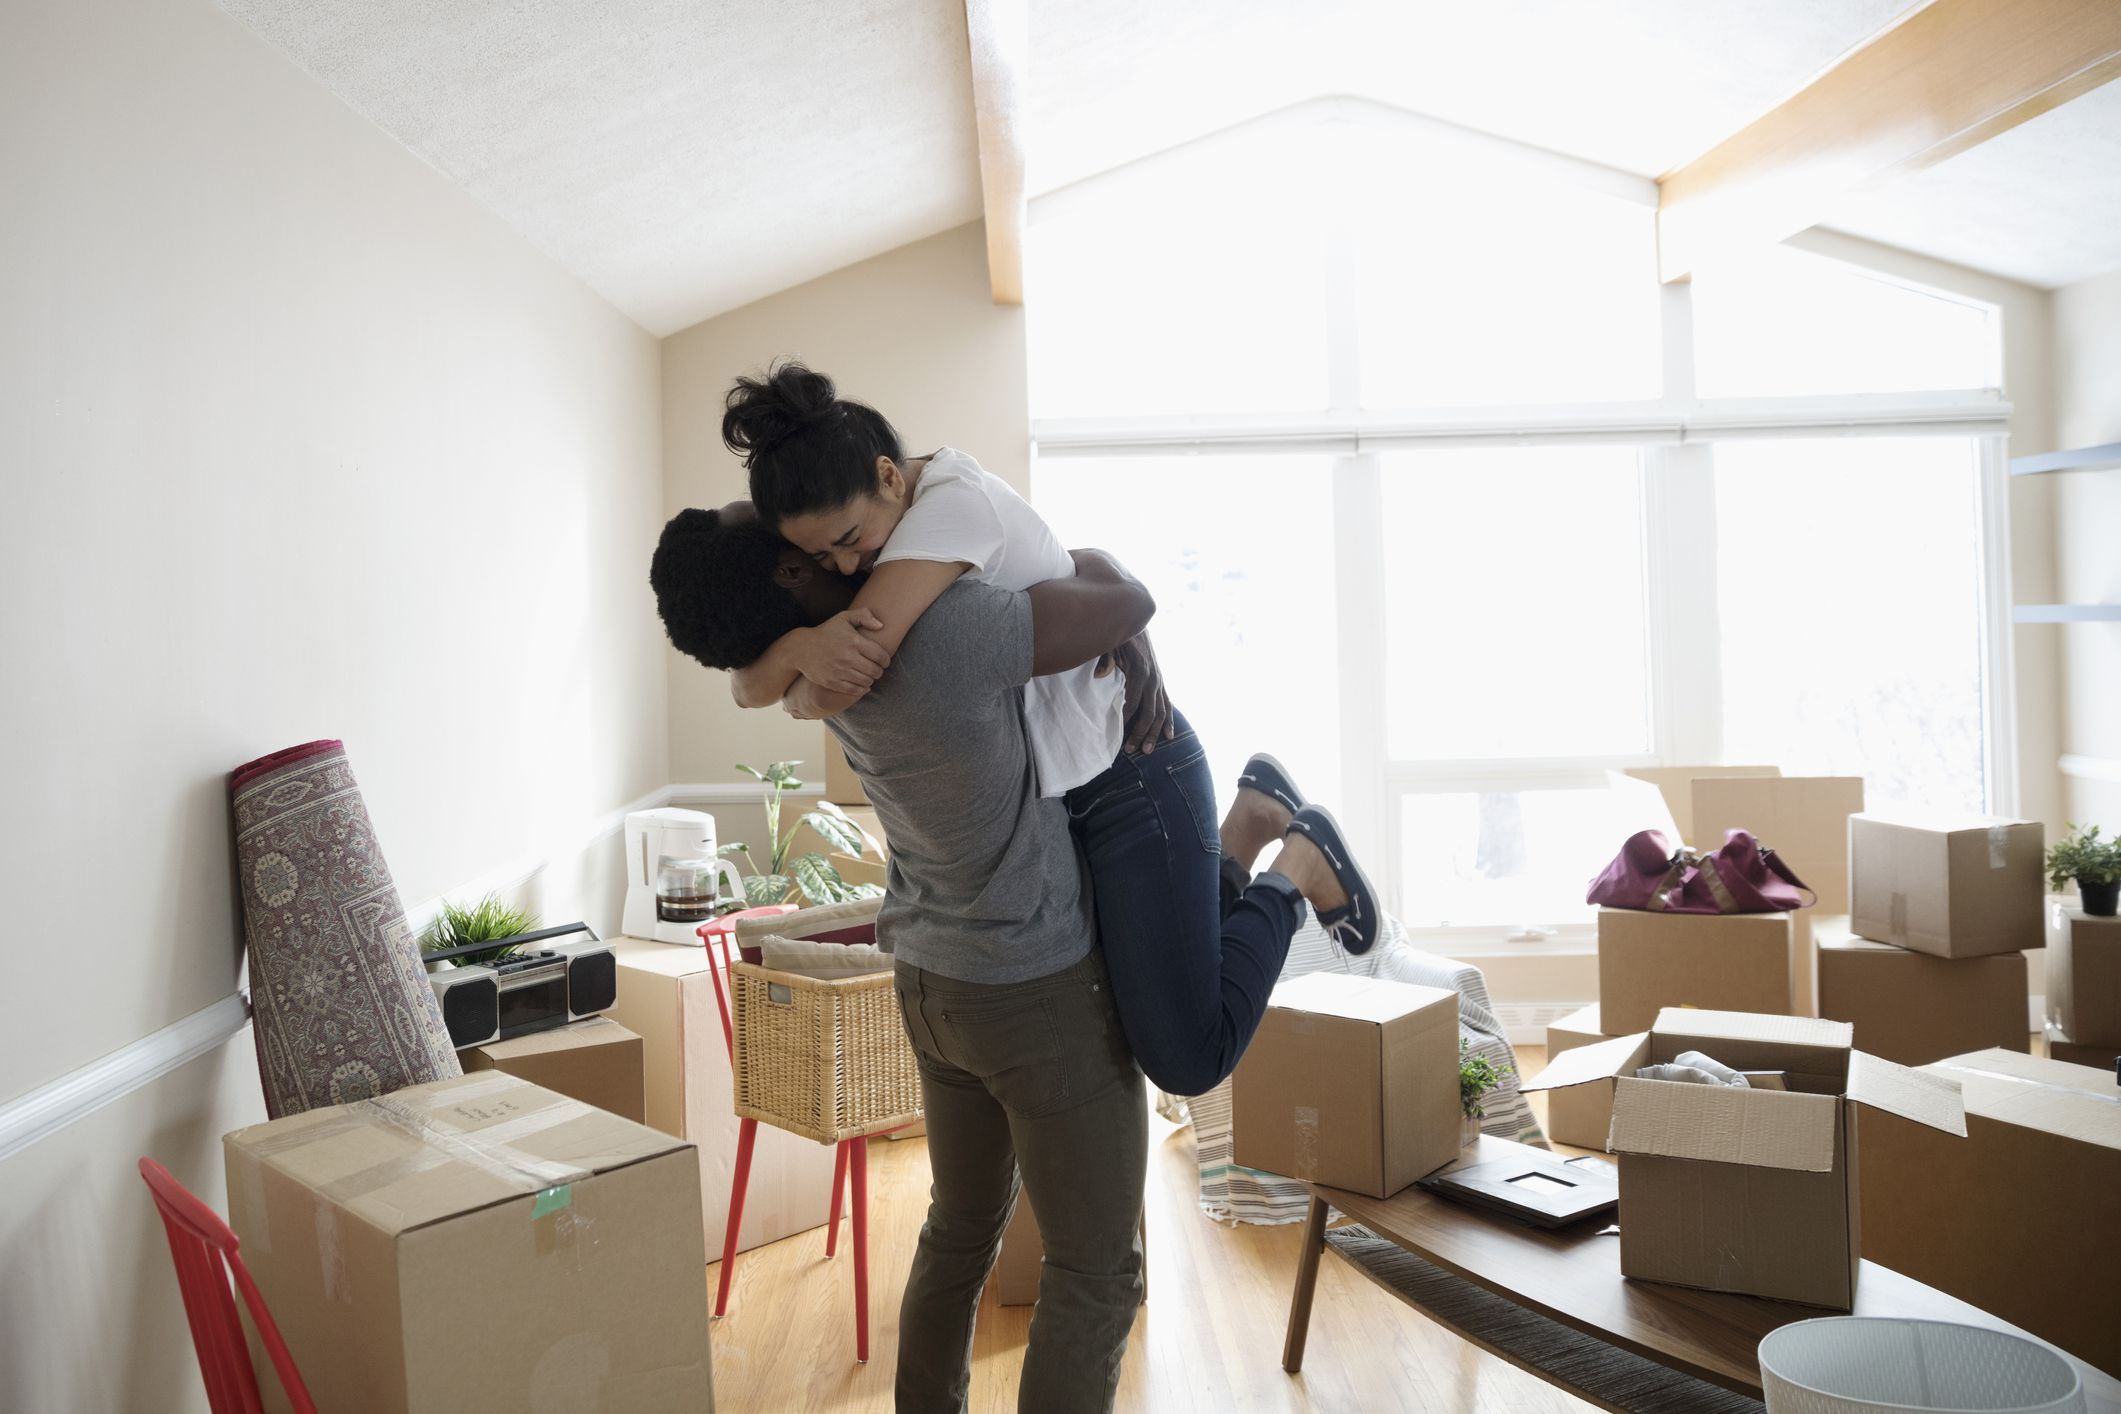 Happy Couple Hugging After Moving Into Their New Home